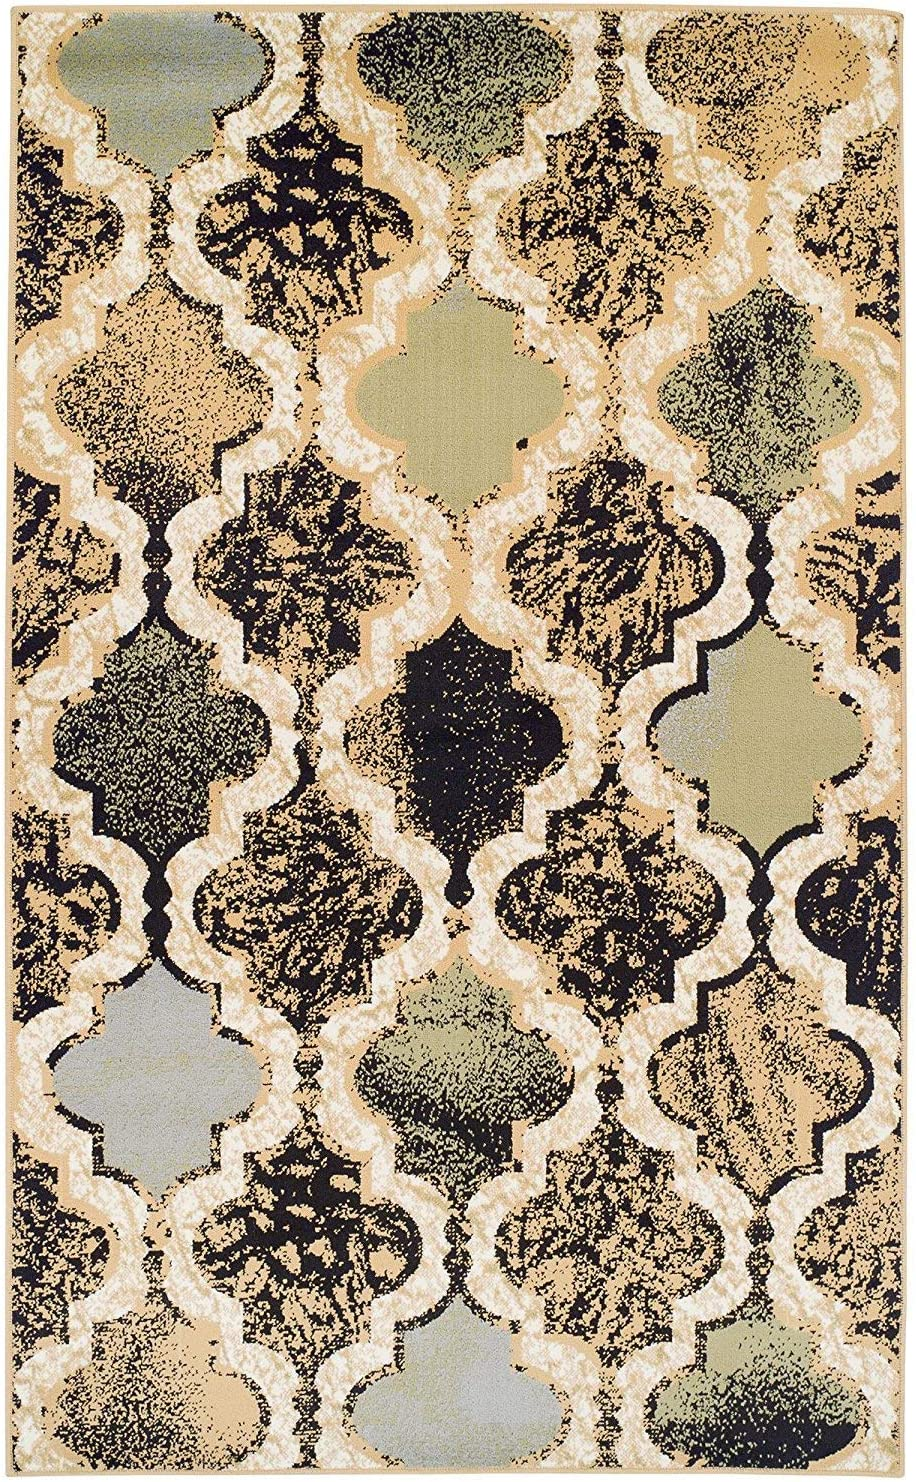 Water-Repellent Rugs 8 x 10 Rug Beige Anti-Static Chic Textured Geometric Trellis Pattern Superior Modern Viking Collection Area Rug 10mm Pile Height with Jute Backing